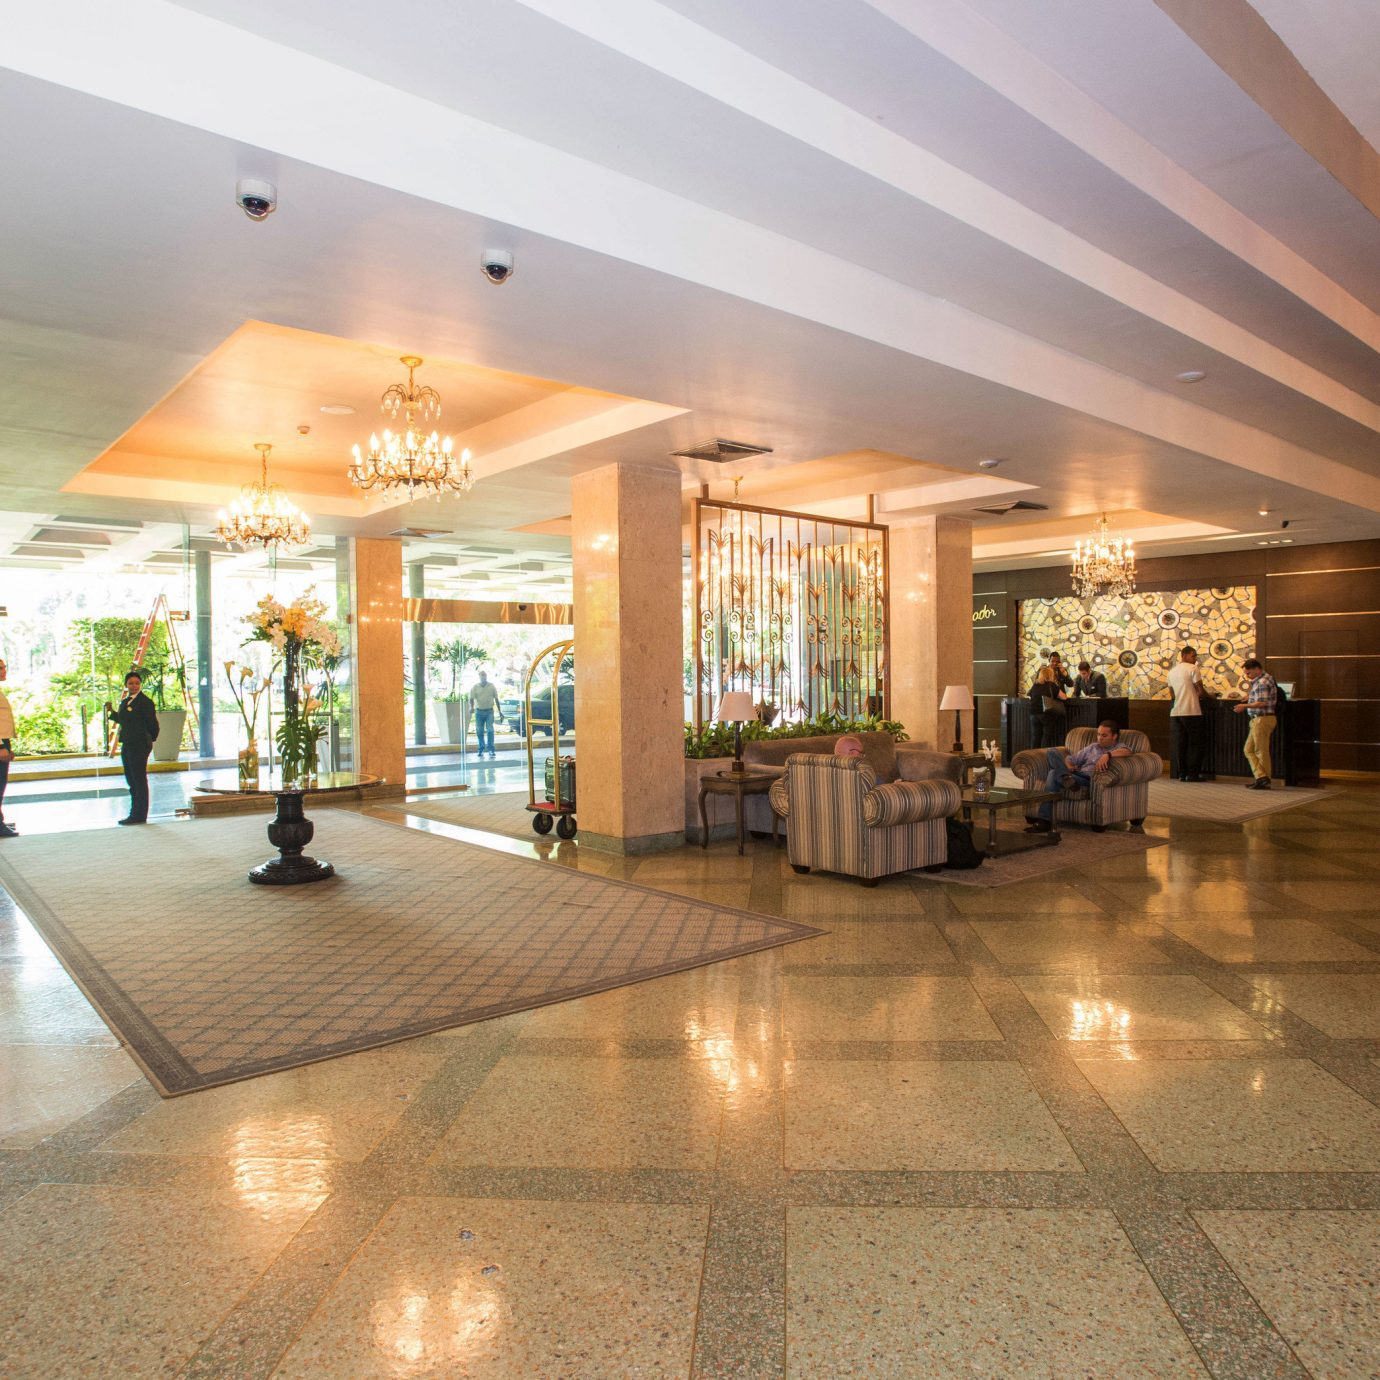 Lobby property building shopping mall plaza convention center headquarters retail